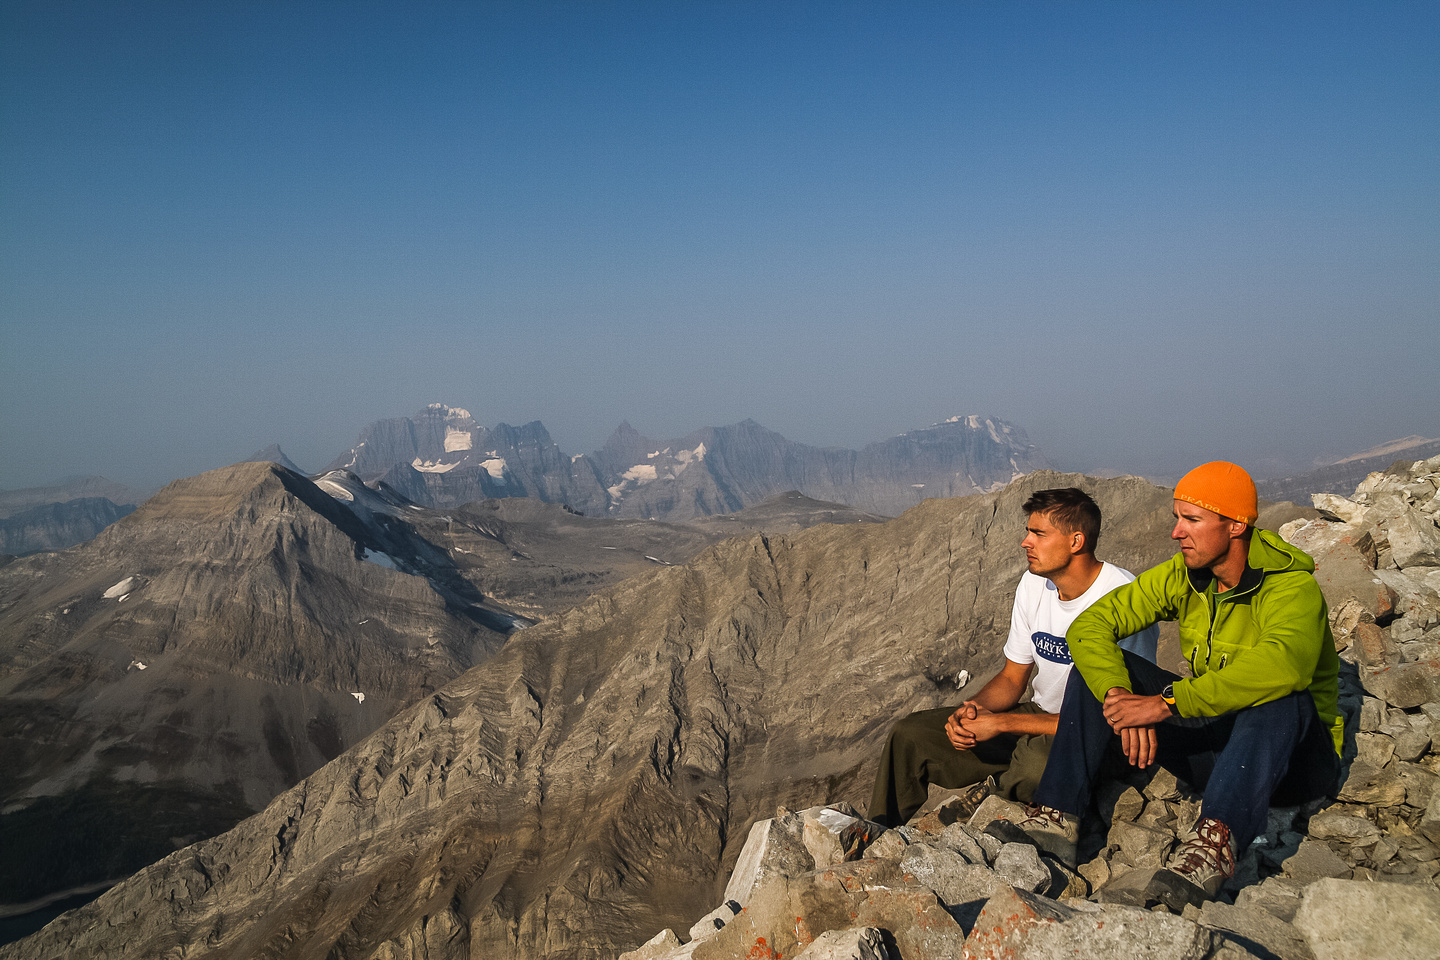 Jon and Vern on the summit of Mount Putnik.